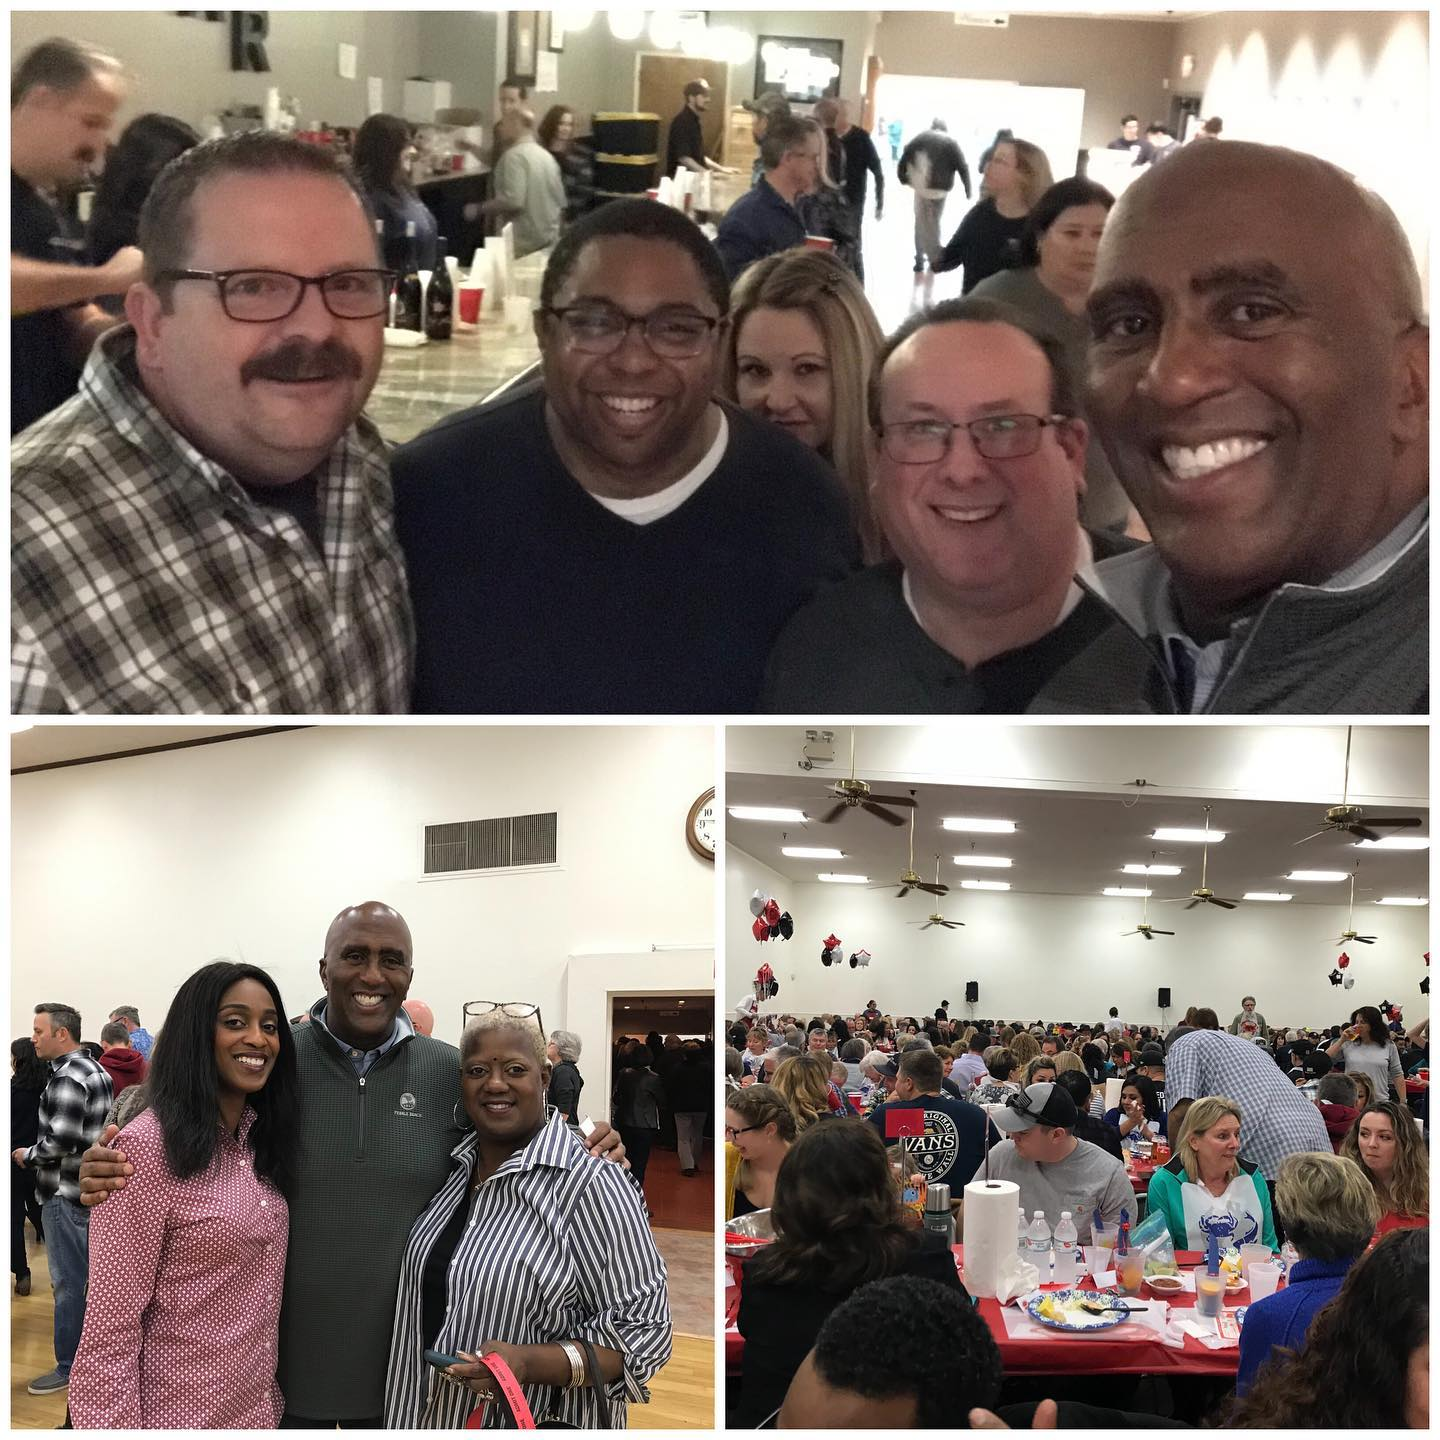 I'm always happy to connect with the Consumnes Firefighters Community Support Foundation at their Annual Crab Feed Fundraiser.  This fantastic event is for a great cause. Here I am with Galt Councilman Rich Lozano, CSD Fire Chief Mike McLaughlin, and CSD Director Rod Brewer.